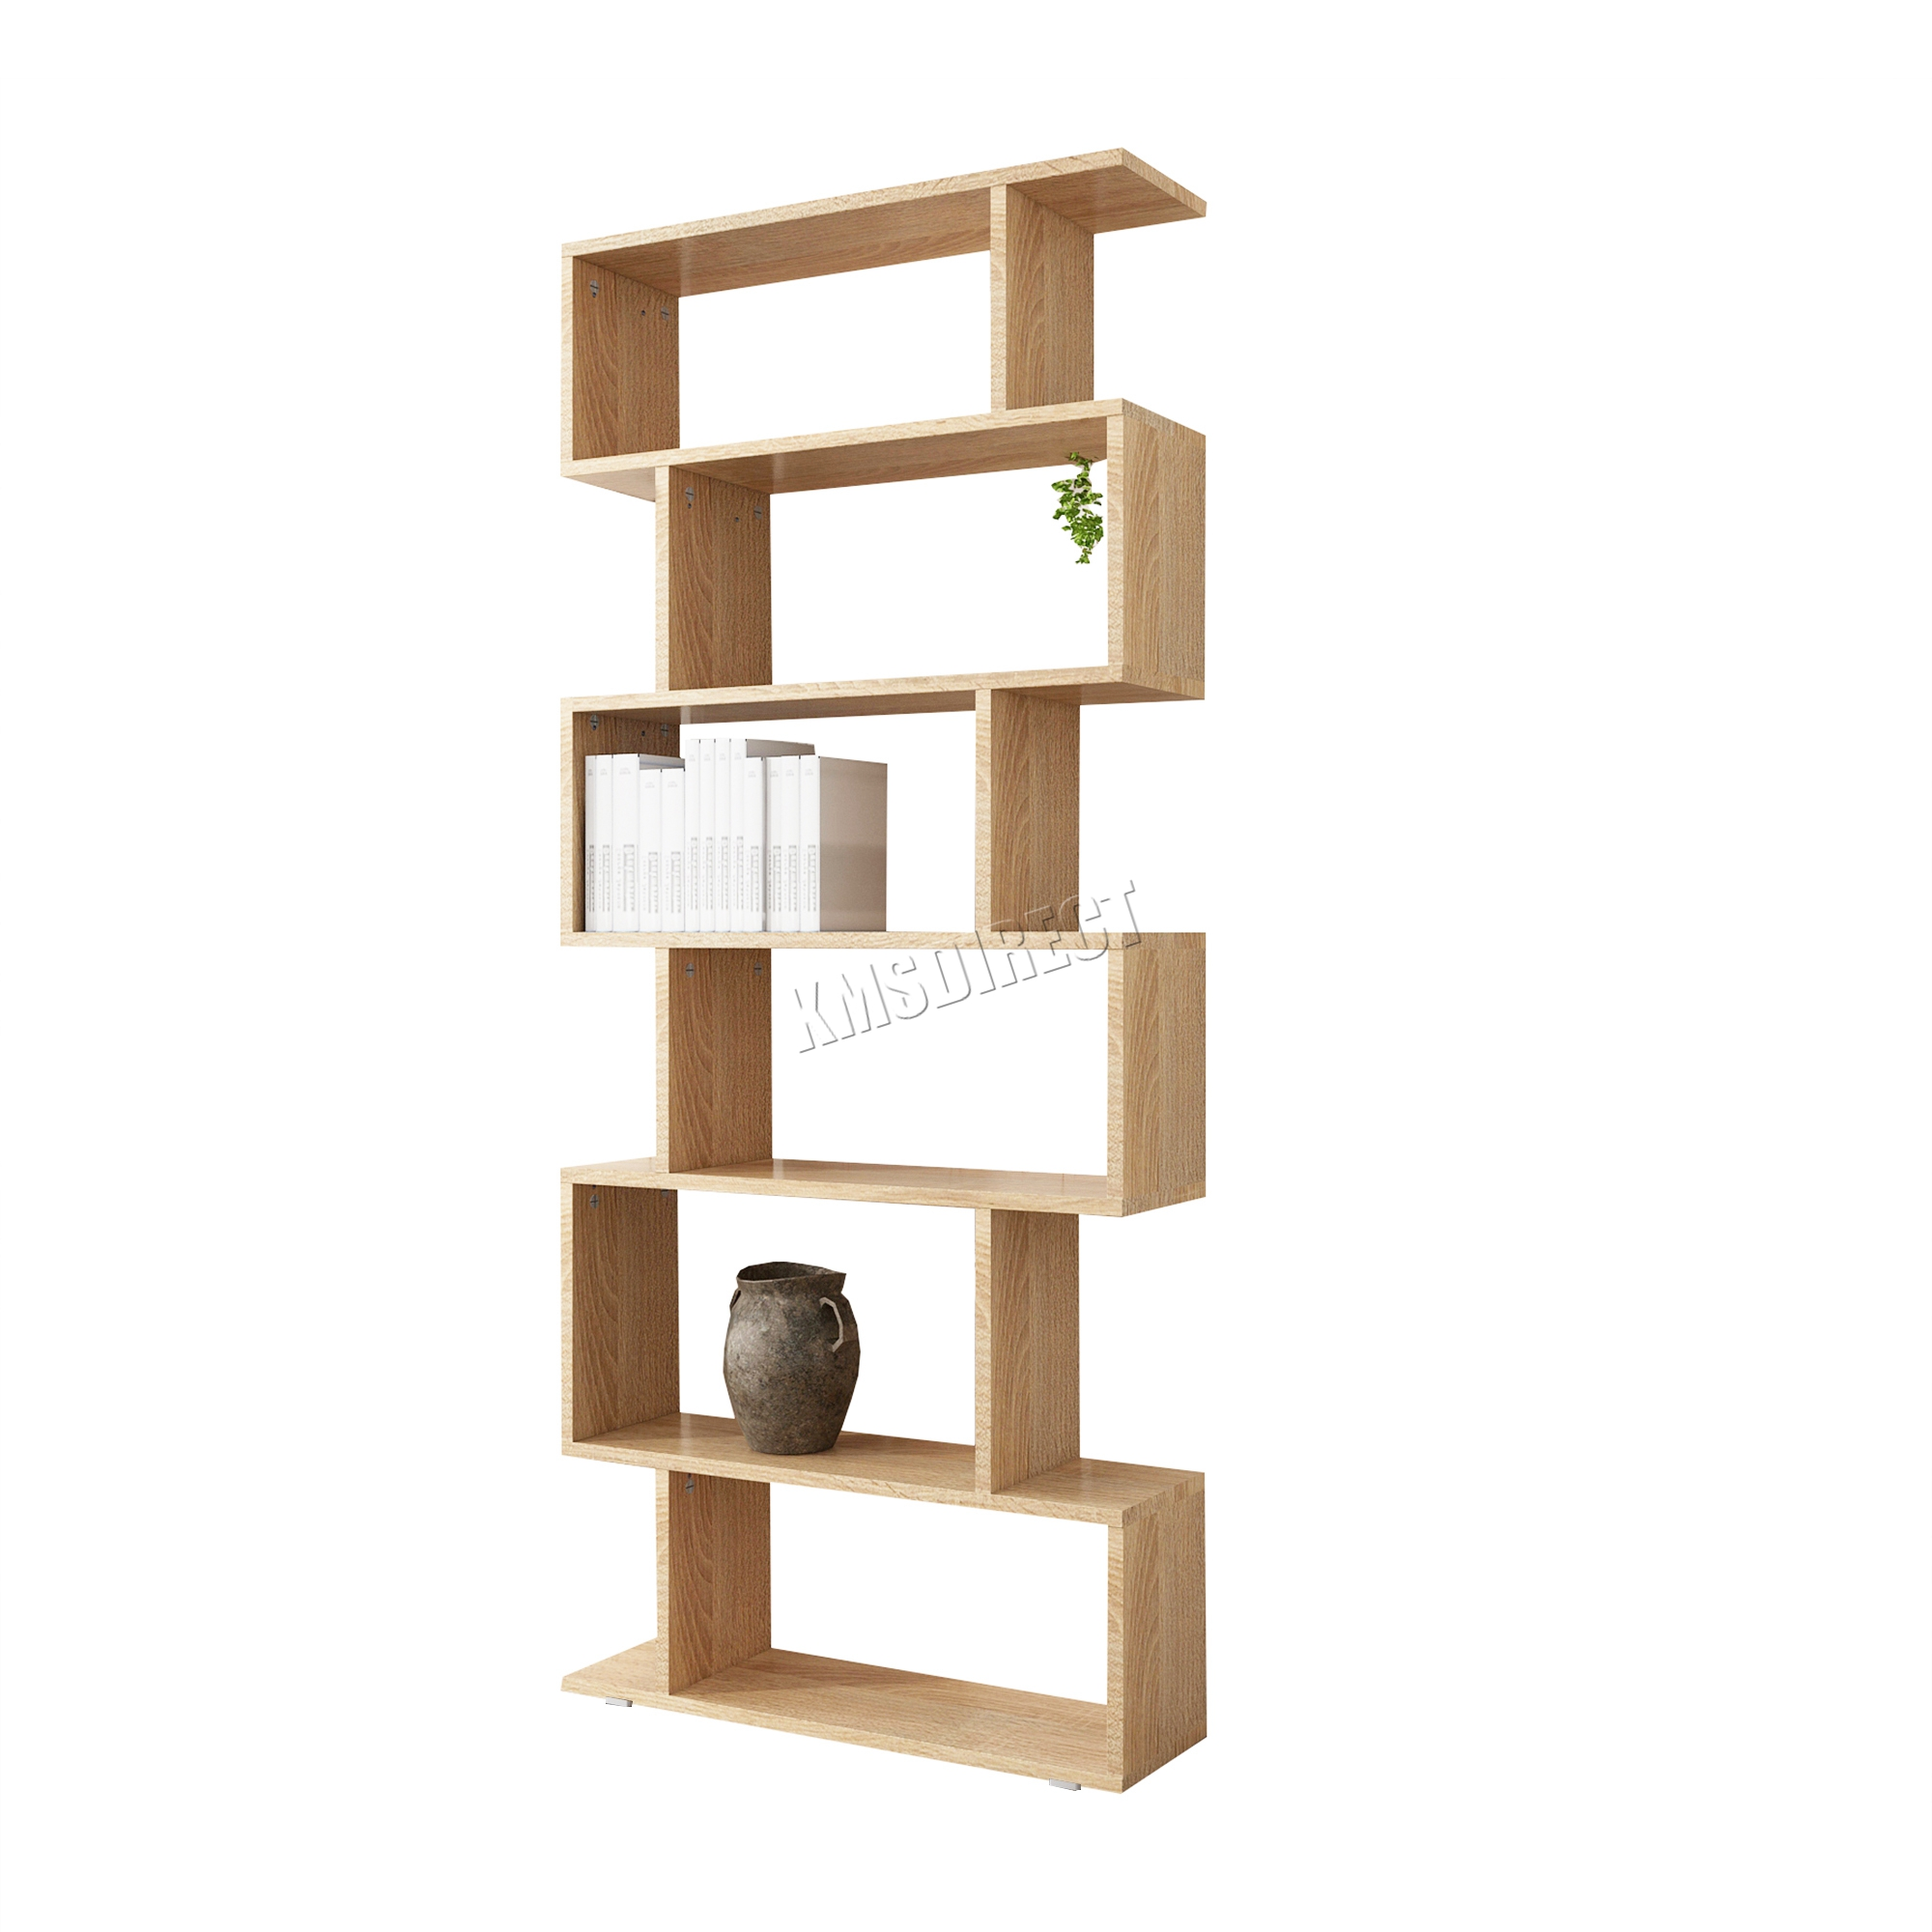 Sentinel Westwood Pb 6 Tier S Shape Bookshelf Bookcase Display